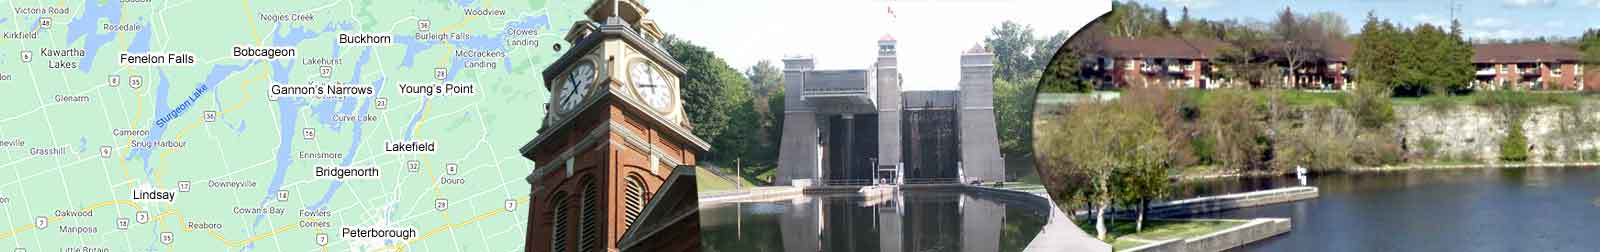 Kawartha Lakes' Fenelon Falls Ontario at Sturgeon Lake and Cameron Lake at The Trent-Severn Waterway, Lock 34